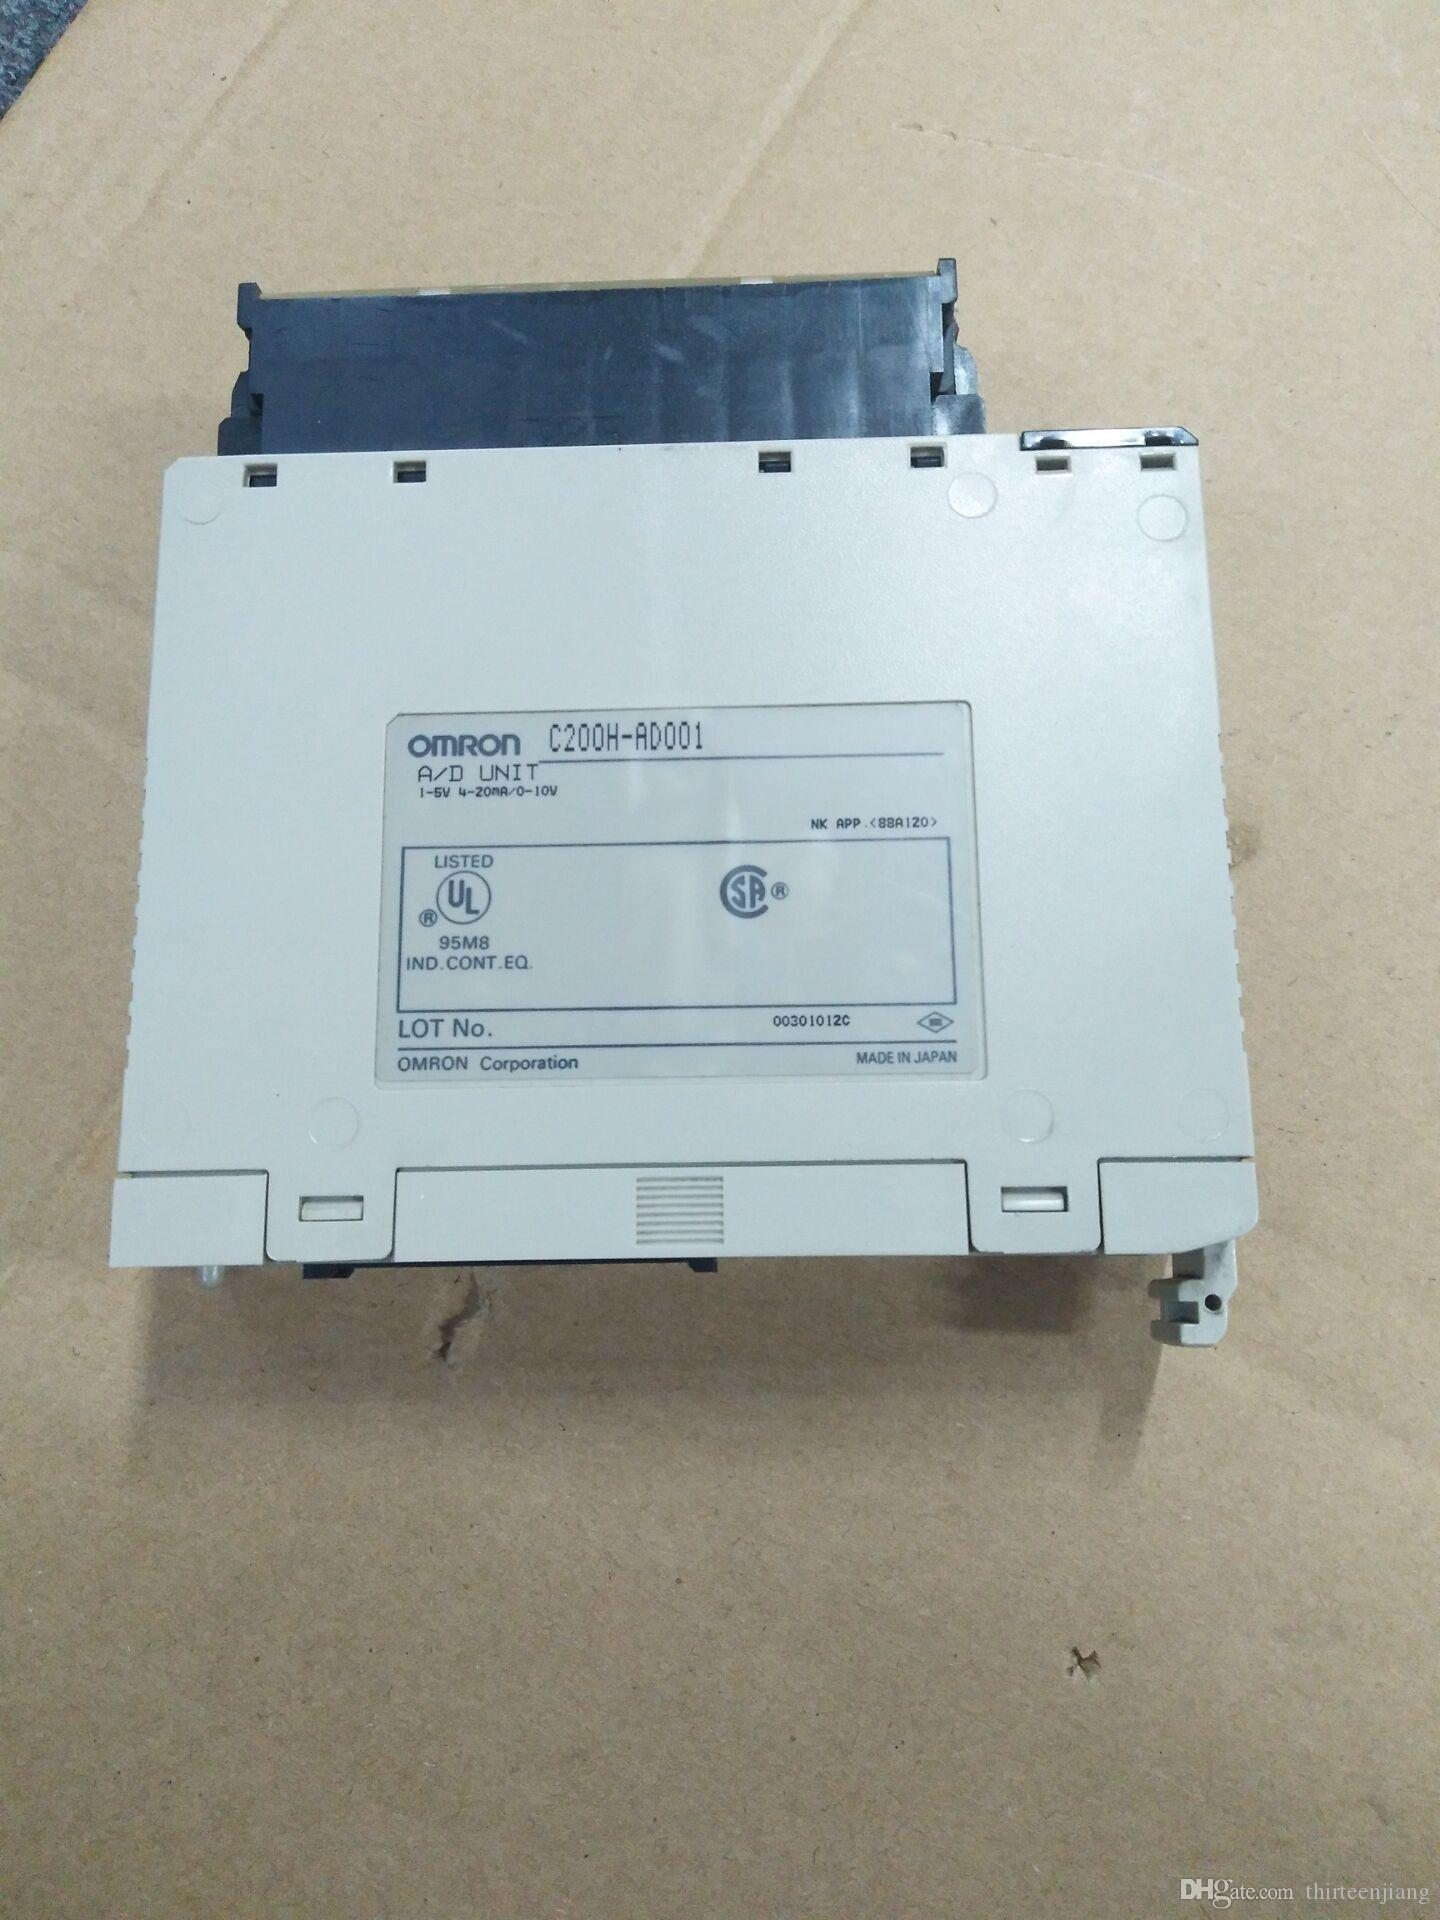 New In Box Omron 4 Point Analog Input A//D  PLC C200HAD001 C200H-AD001